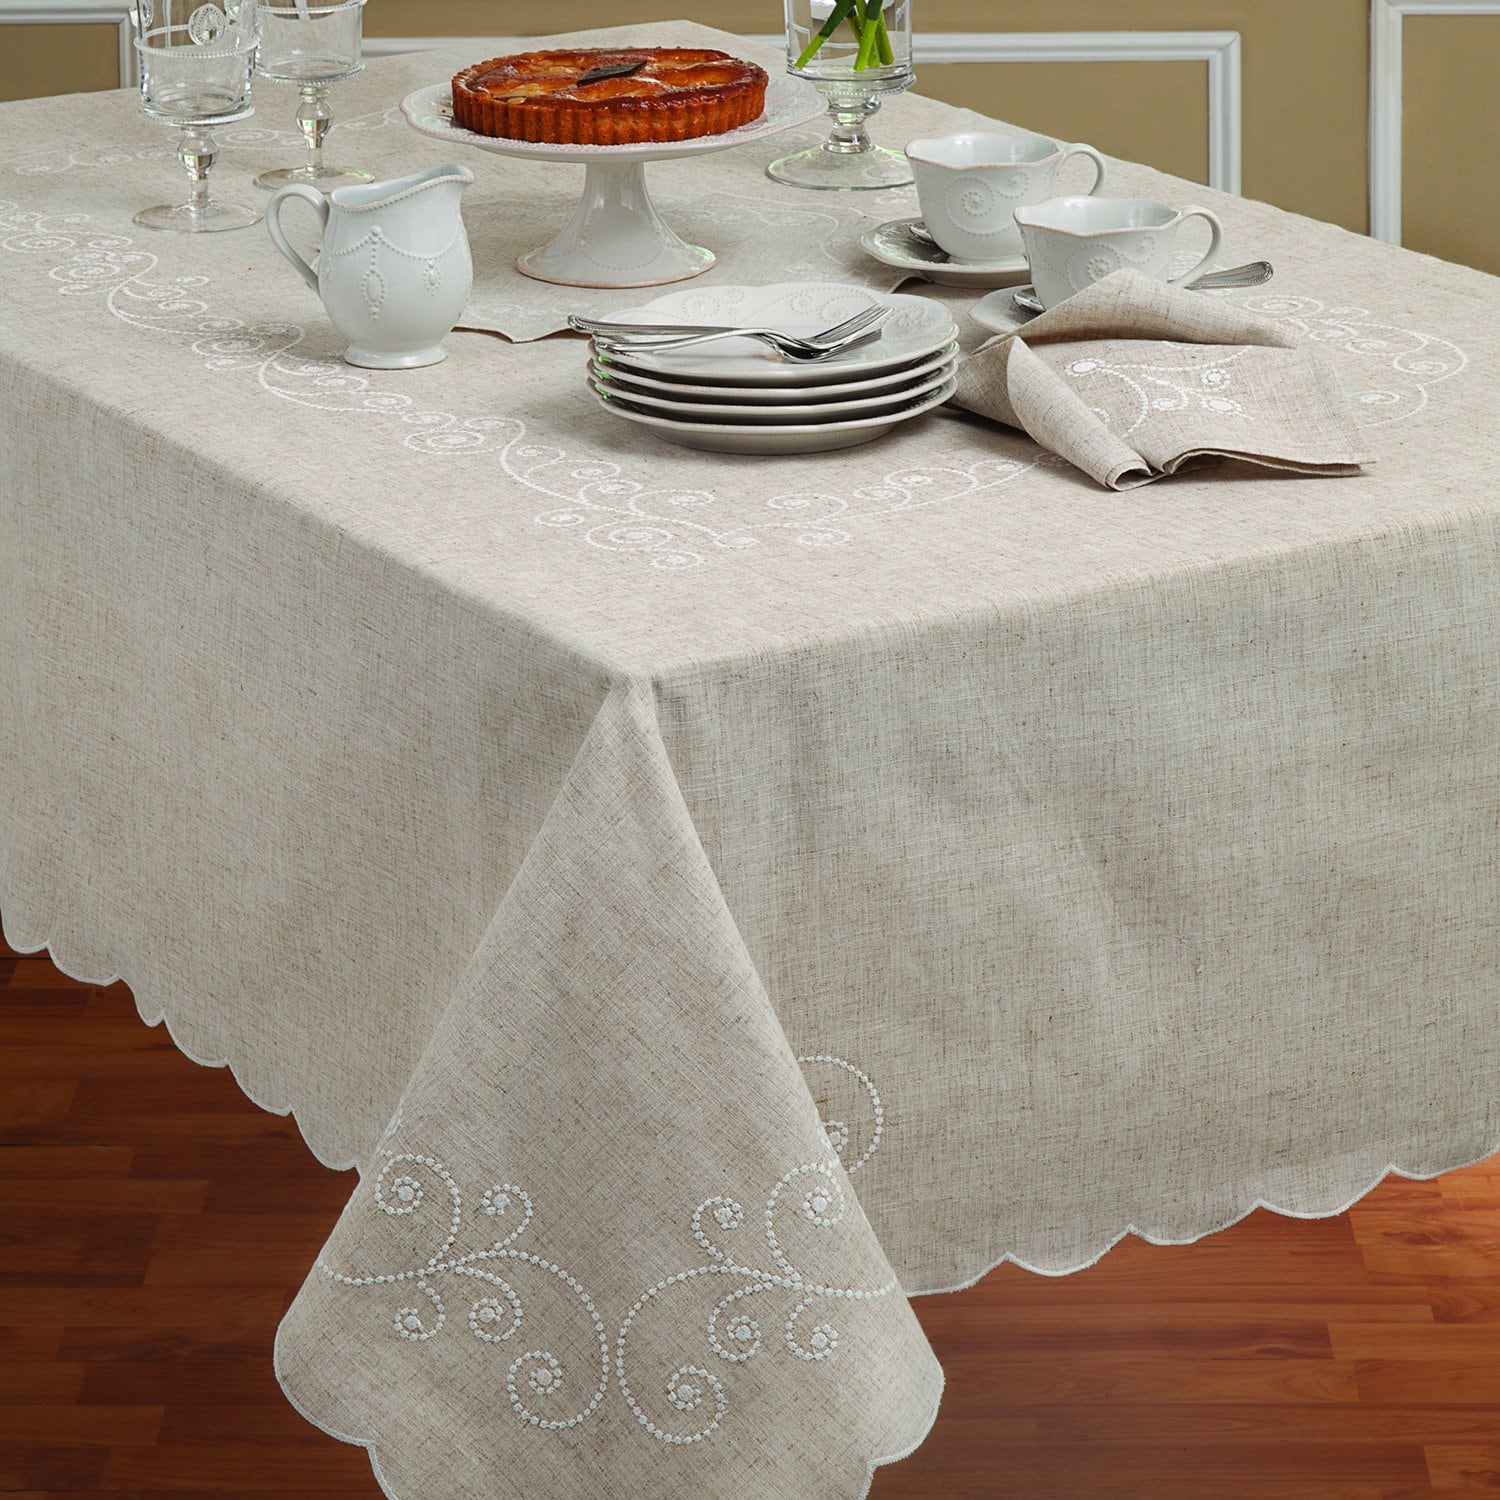 lenox french perle embroidered linen blend tablecloth small round tablecloths for accent tables free shipping orders over beech coffee table green marble top teal kitchen accents